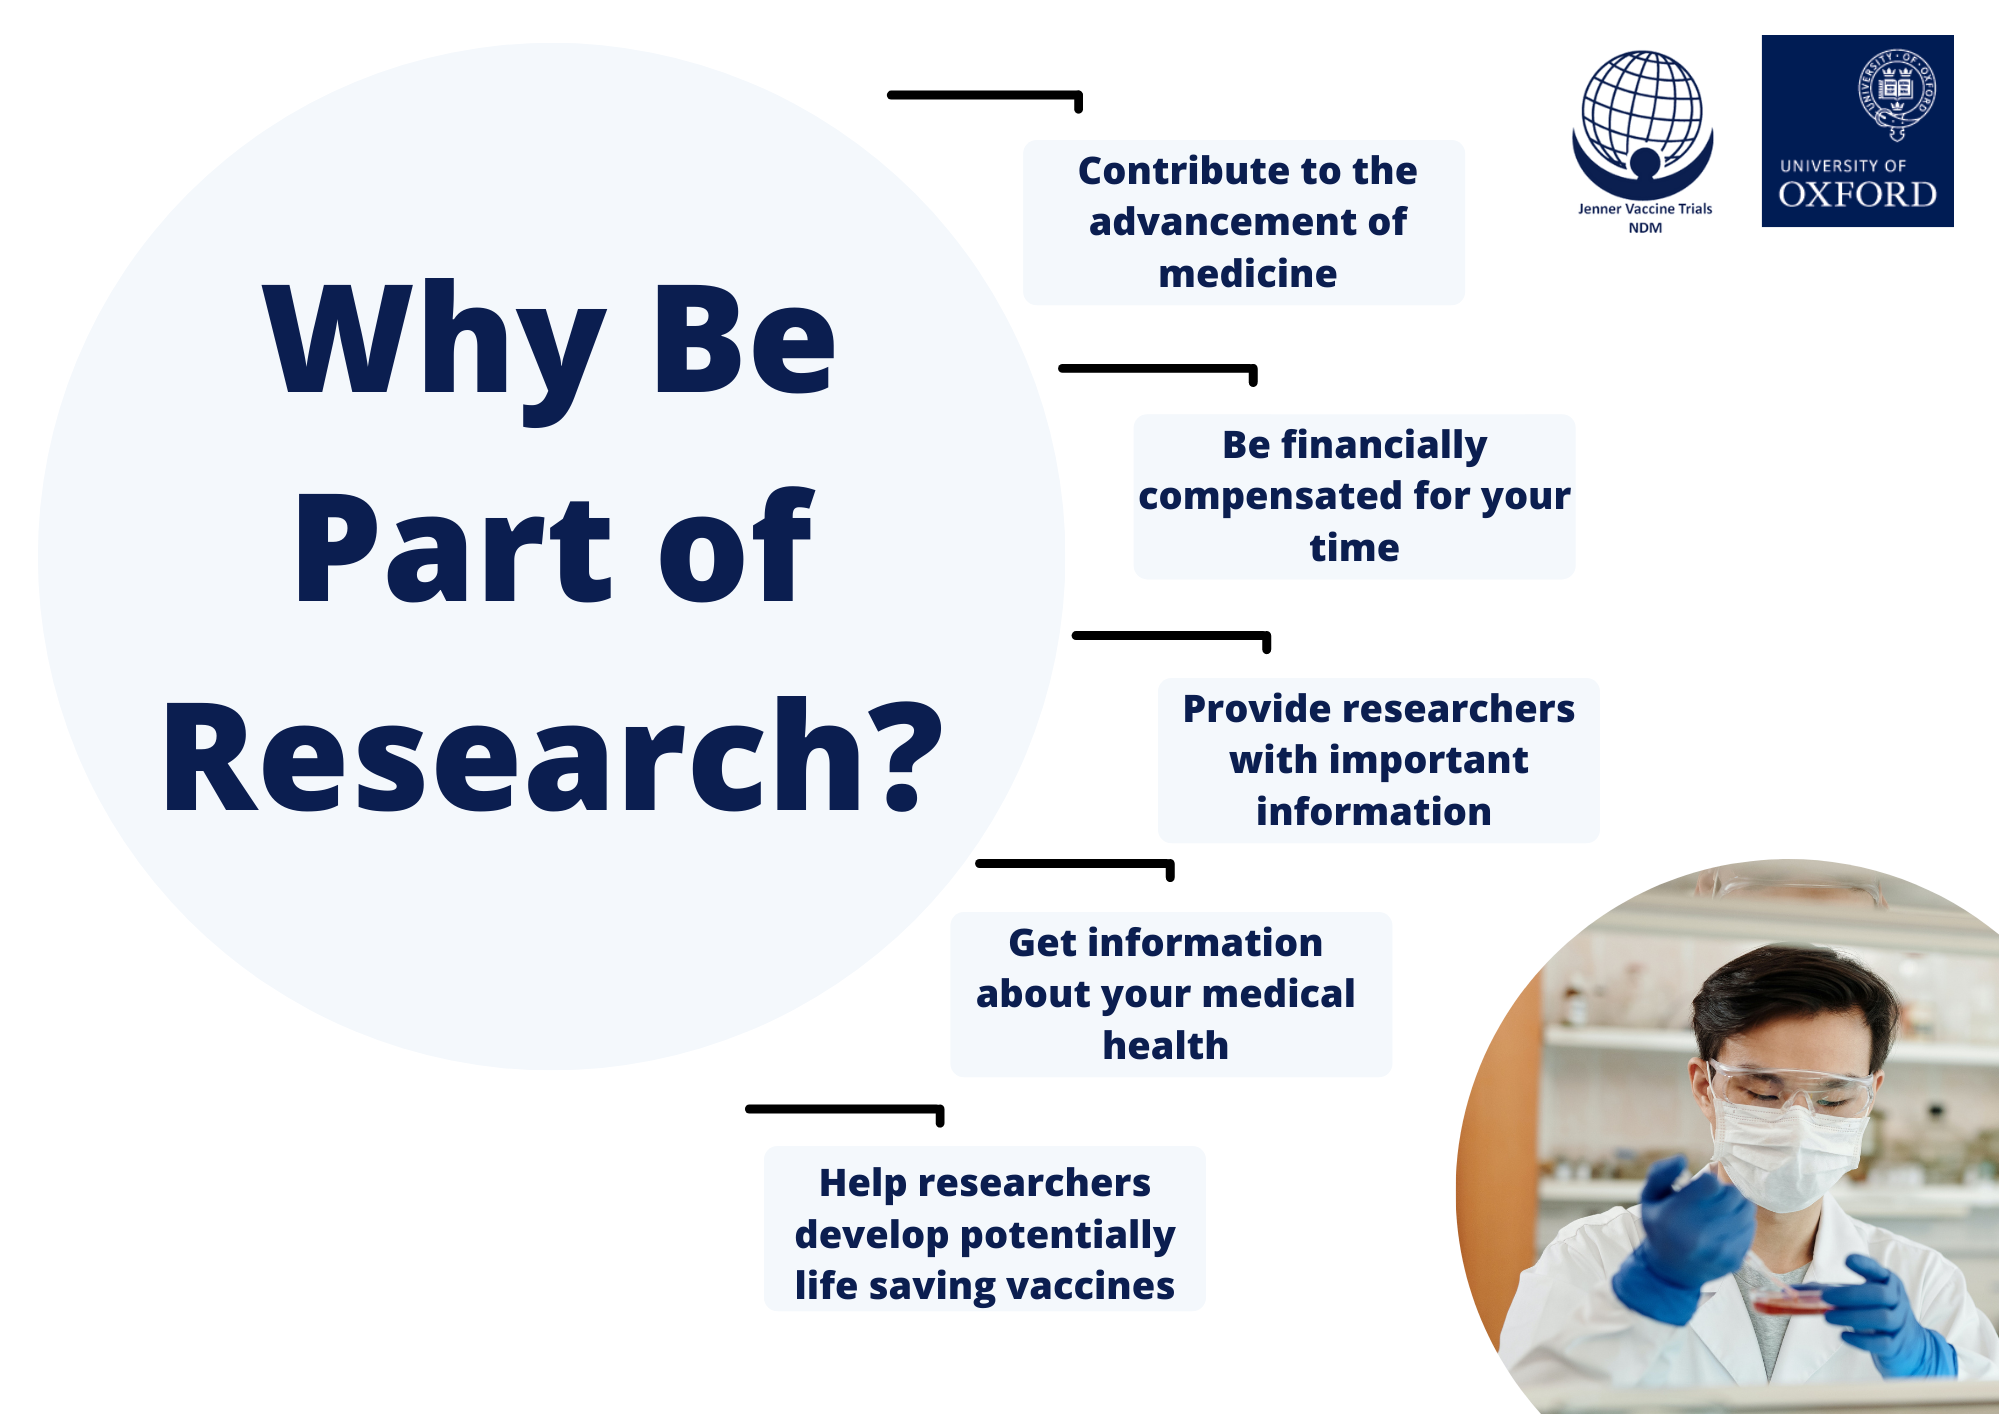 Why be part of research